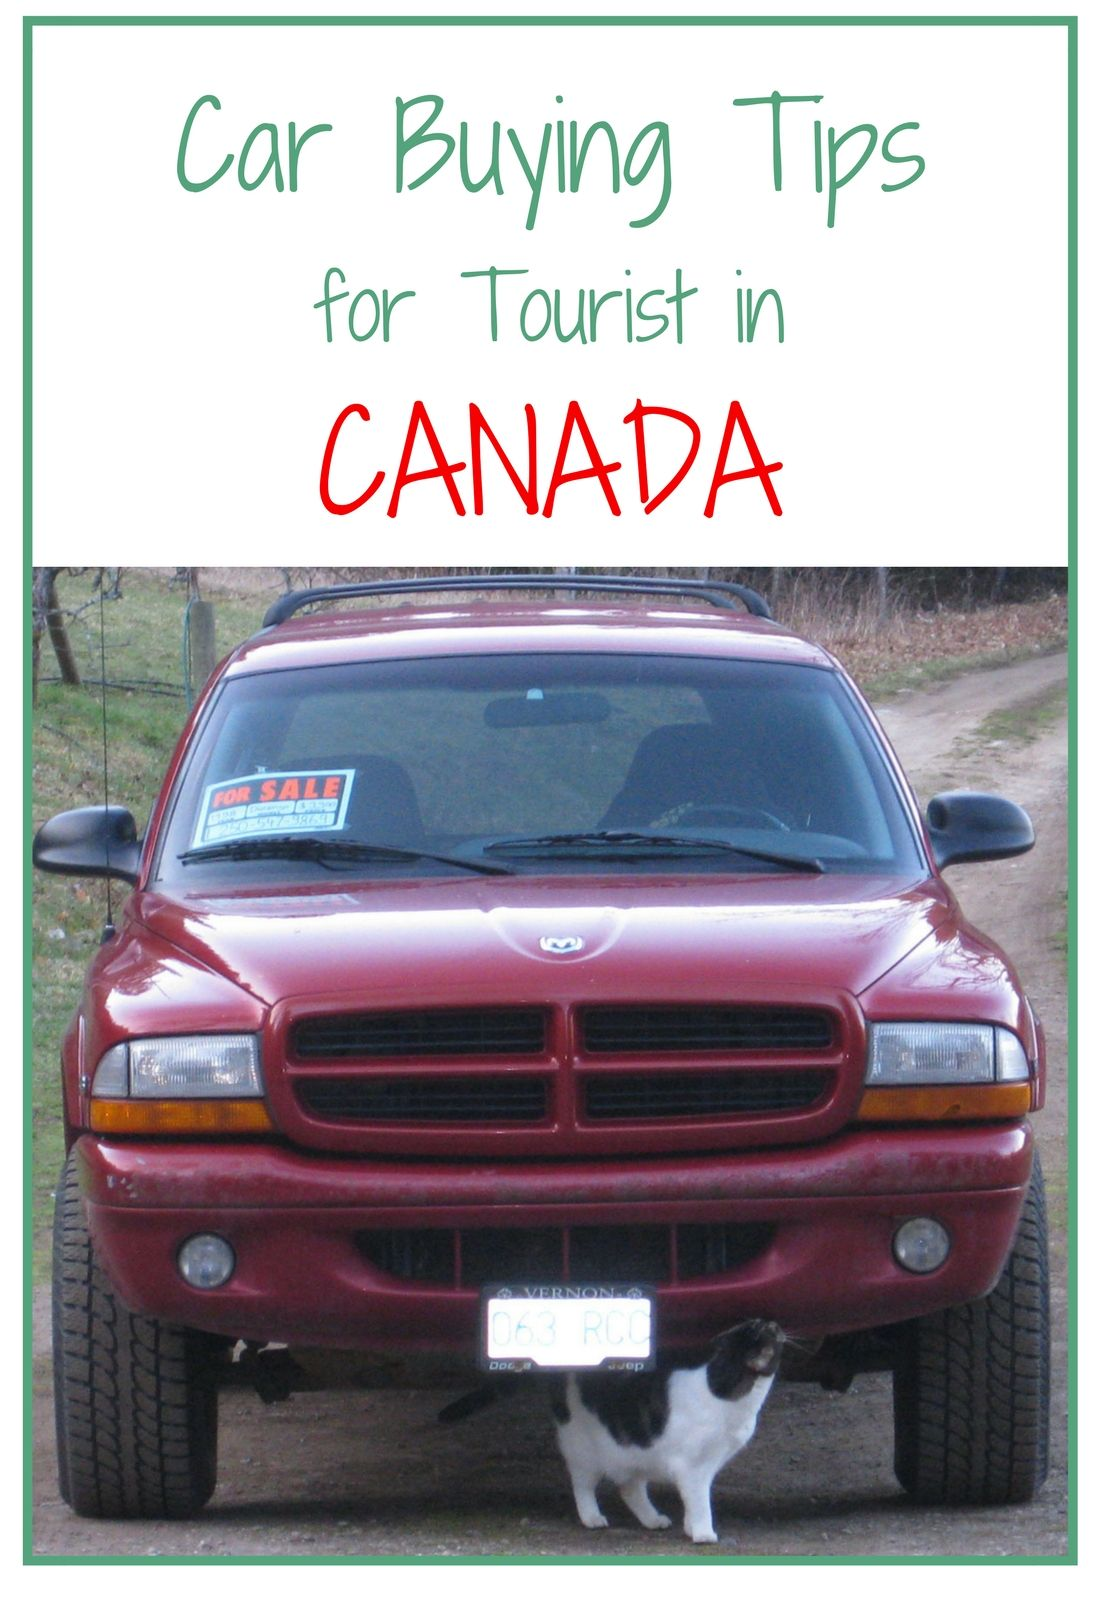 Car buying tips canada for tourists car buying tips car